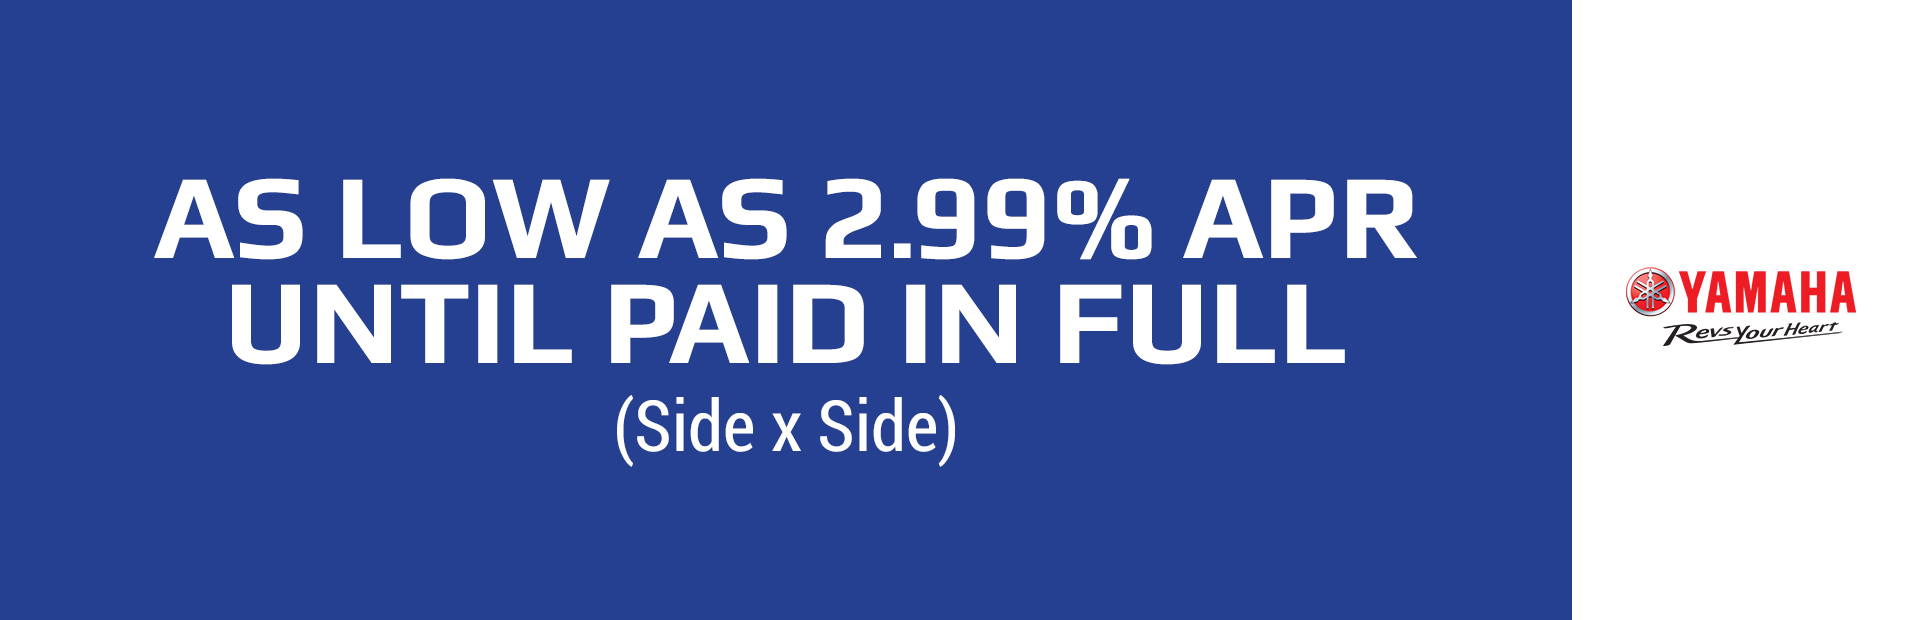 Yamaha: As Low As 2.99% APR Until Paid In Full (SxS)